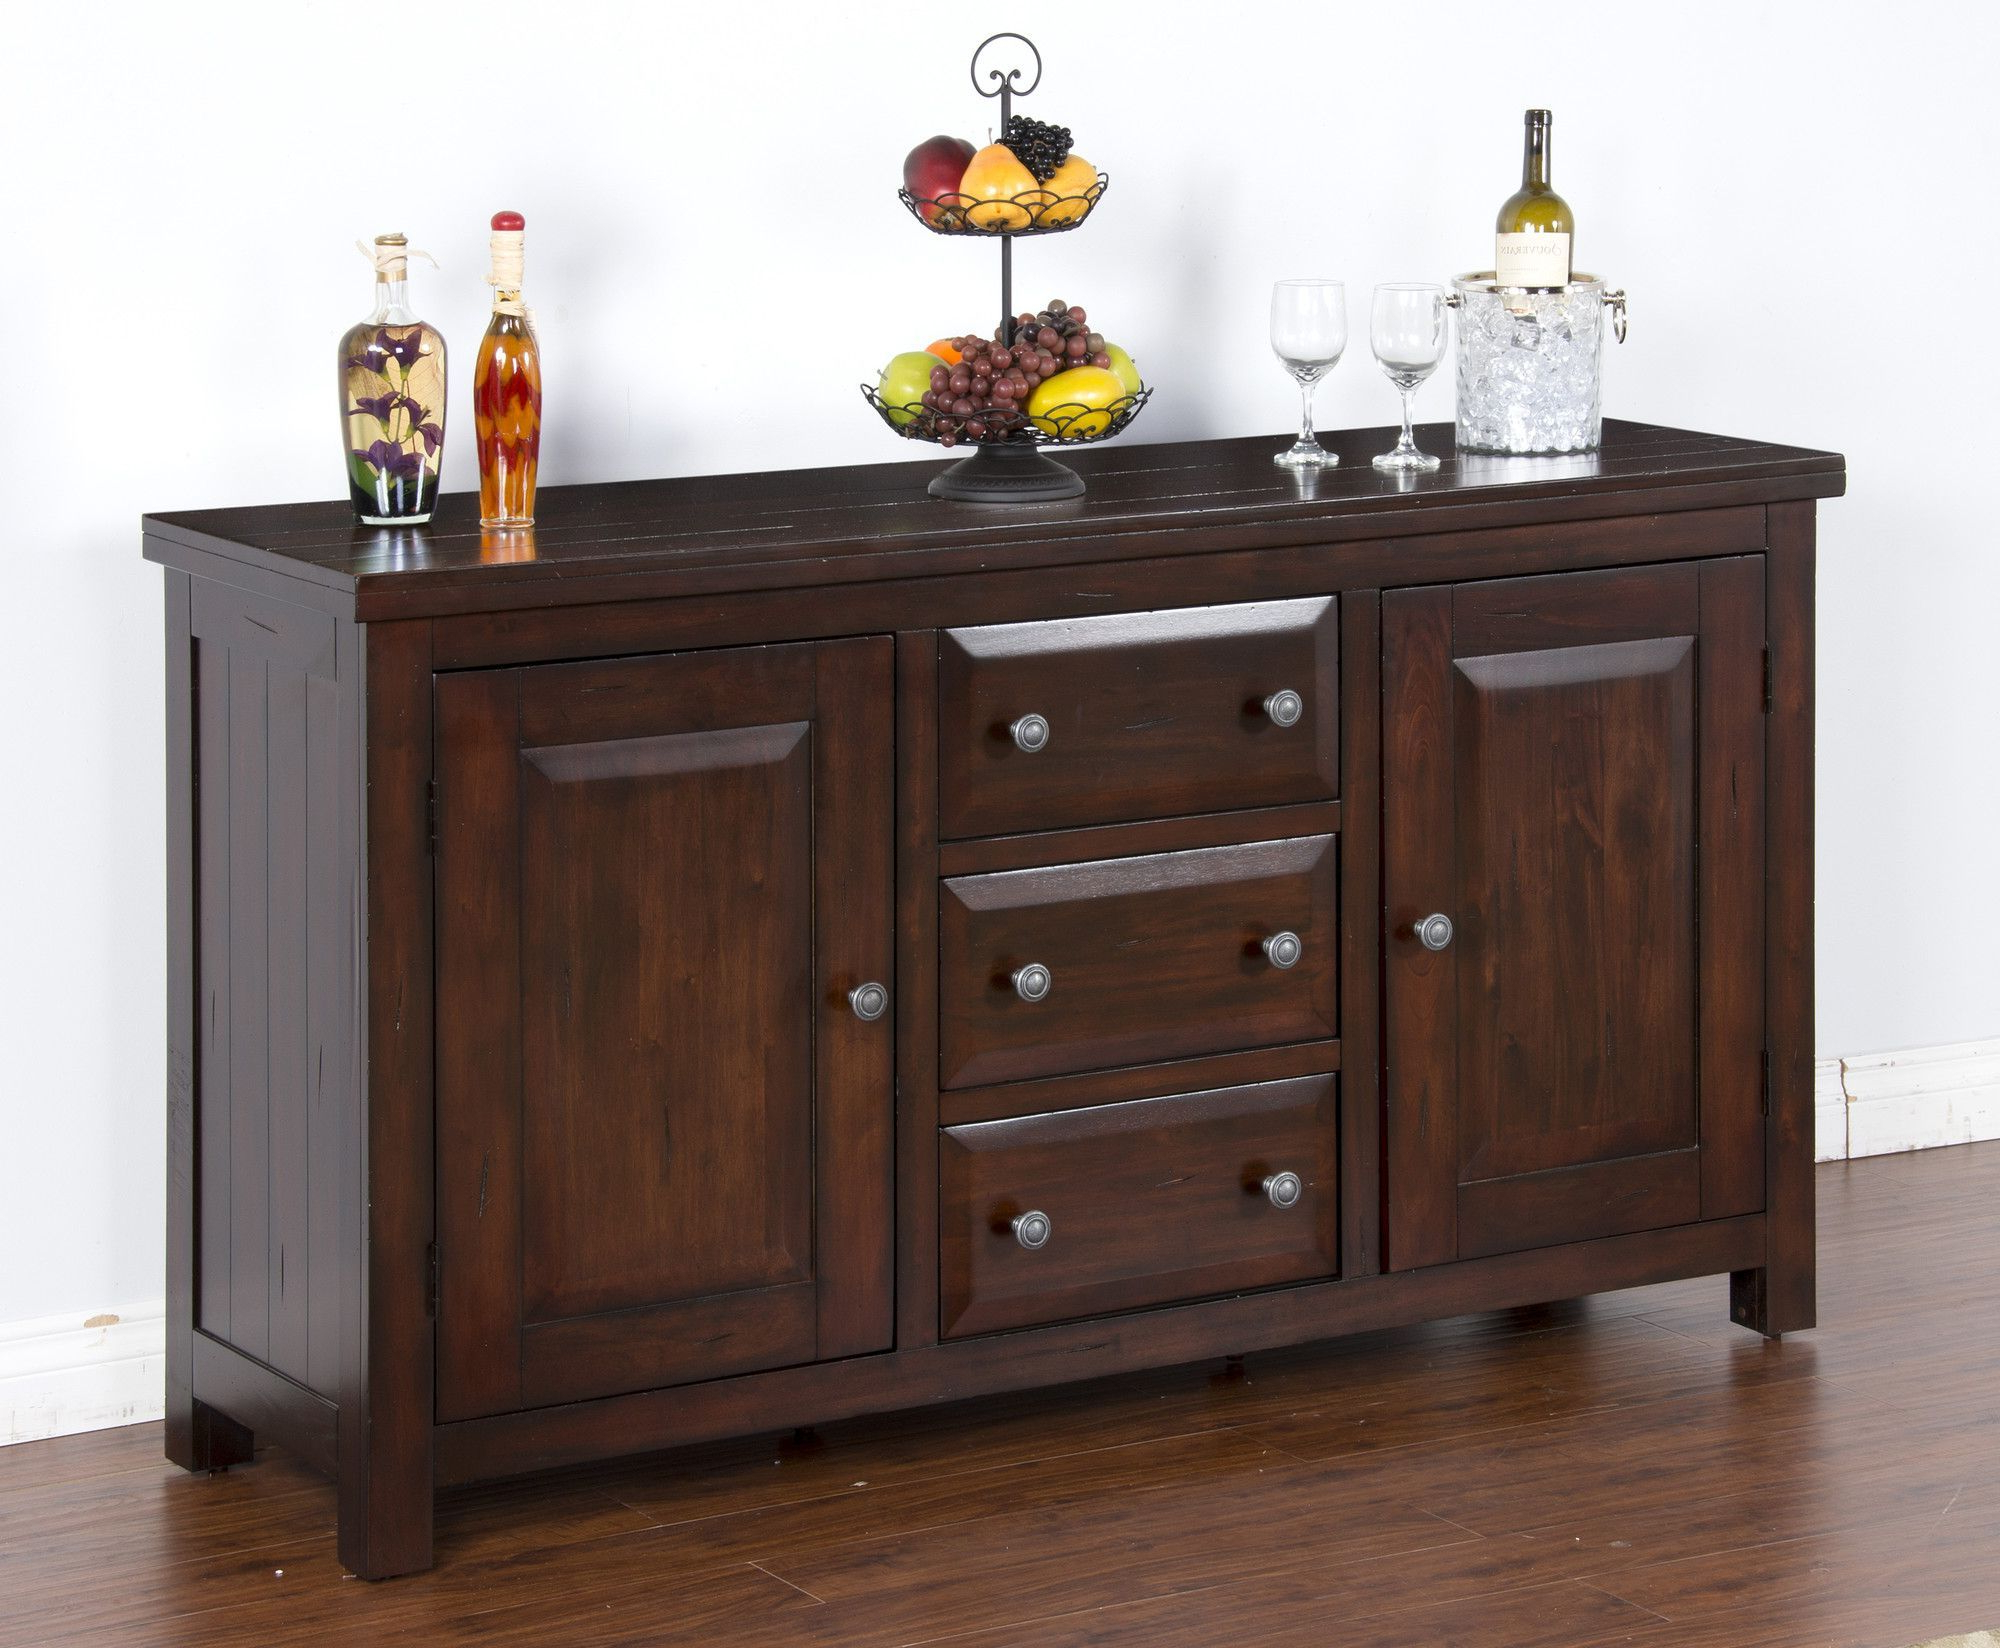 2020 Seiling Sideboards Throughout Buffet (View 1 of 20)